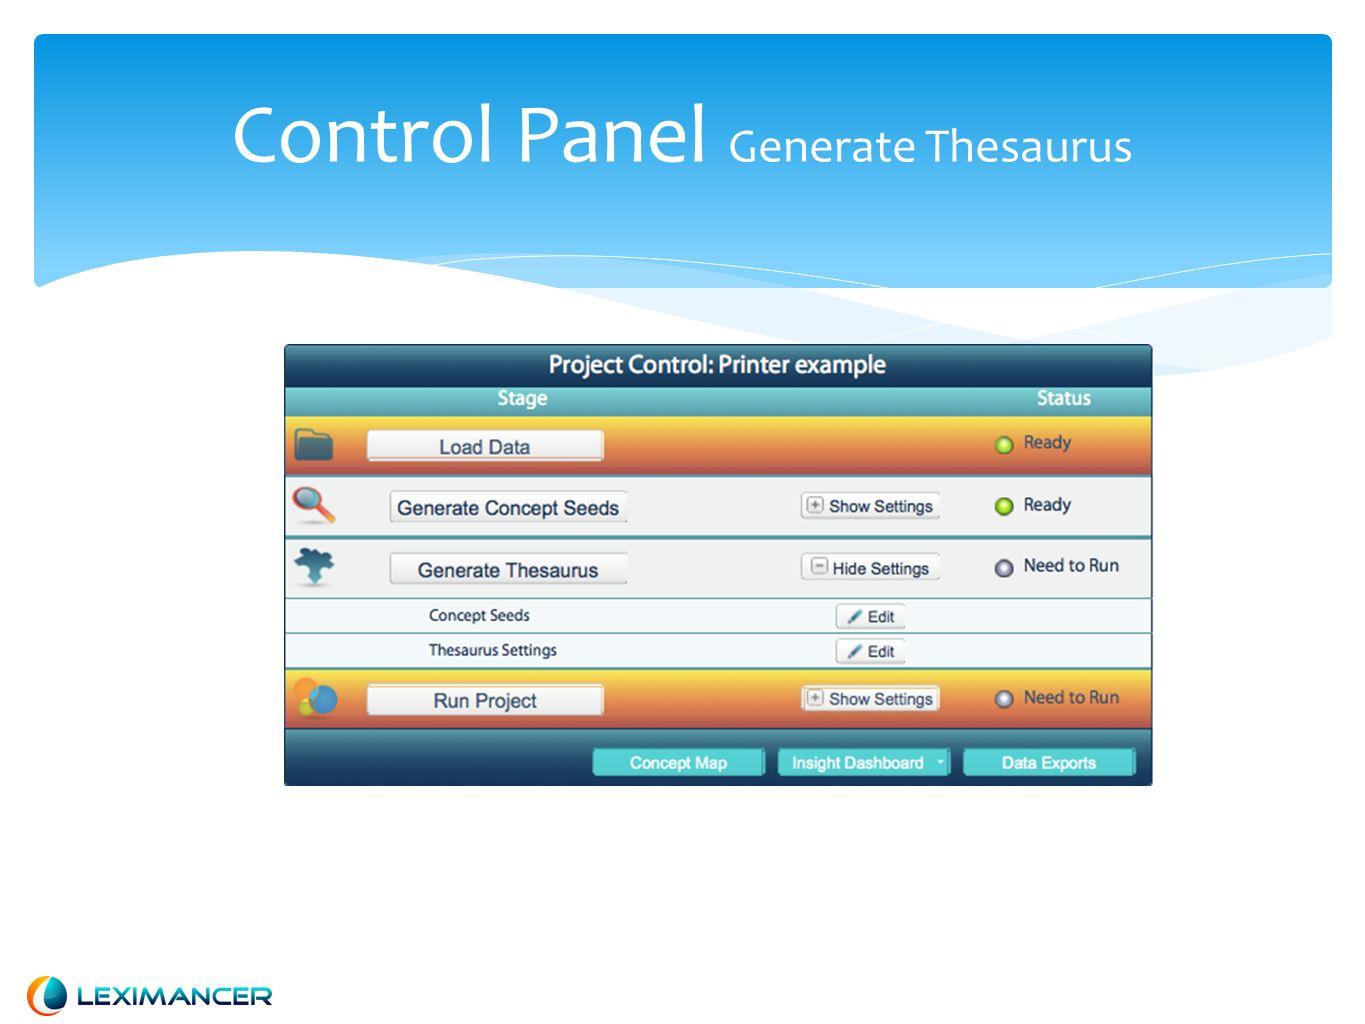 Control Panel Generate Thesaurus